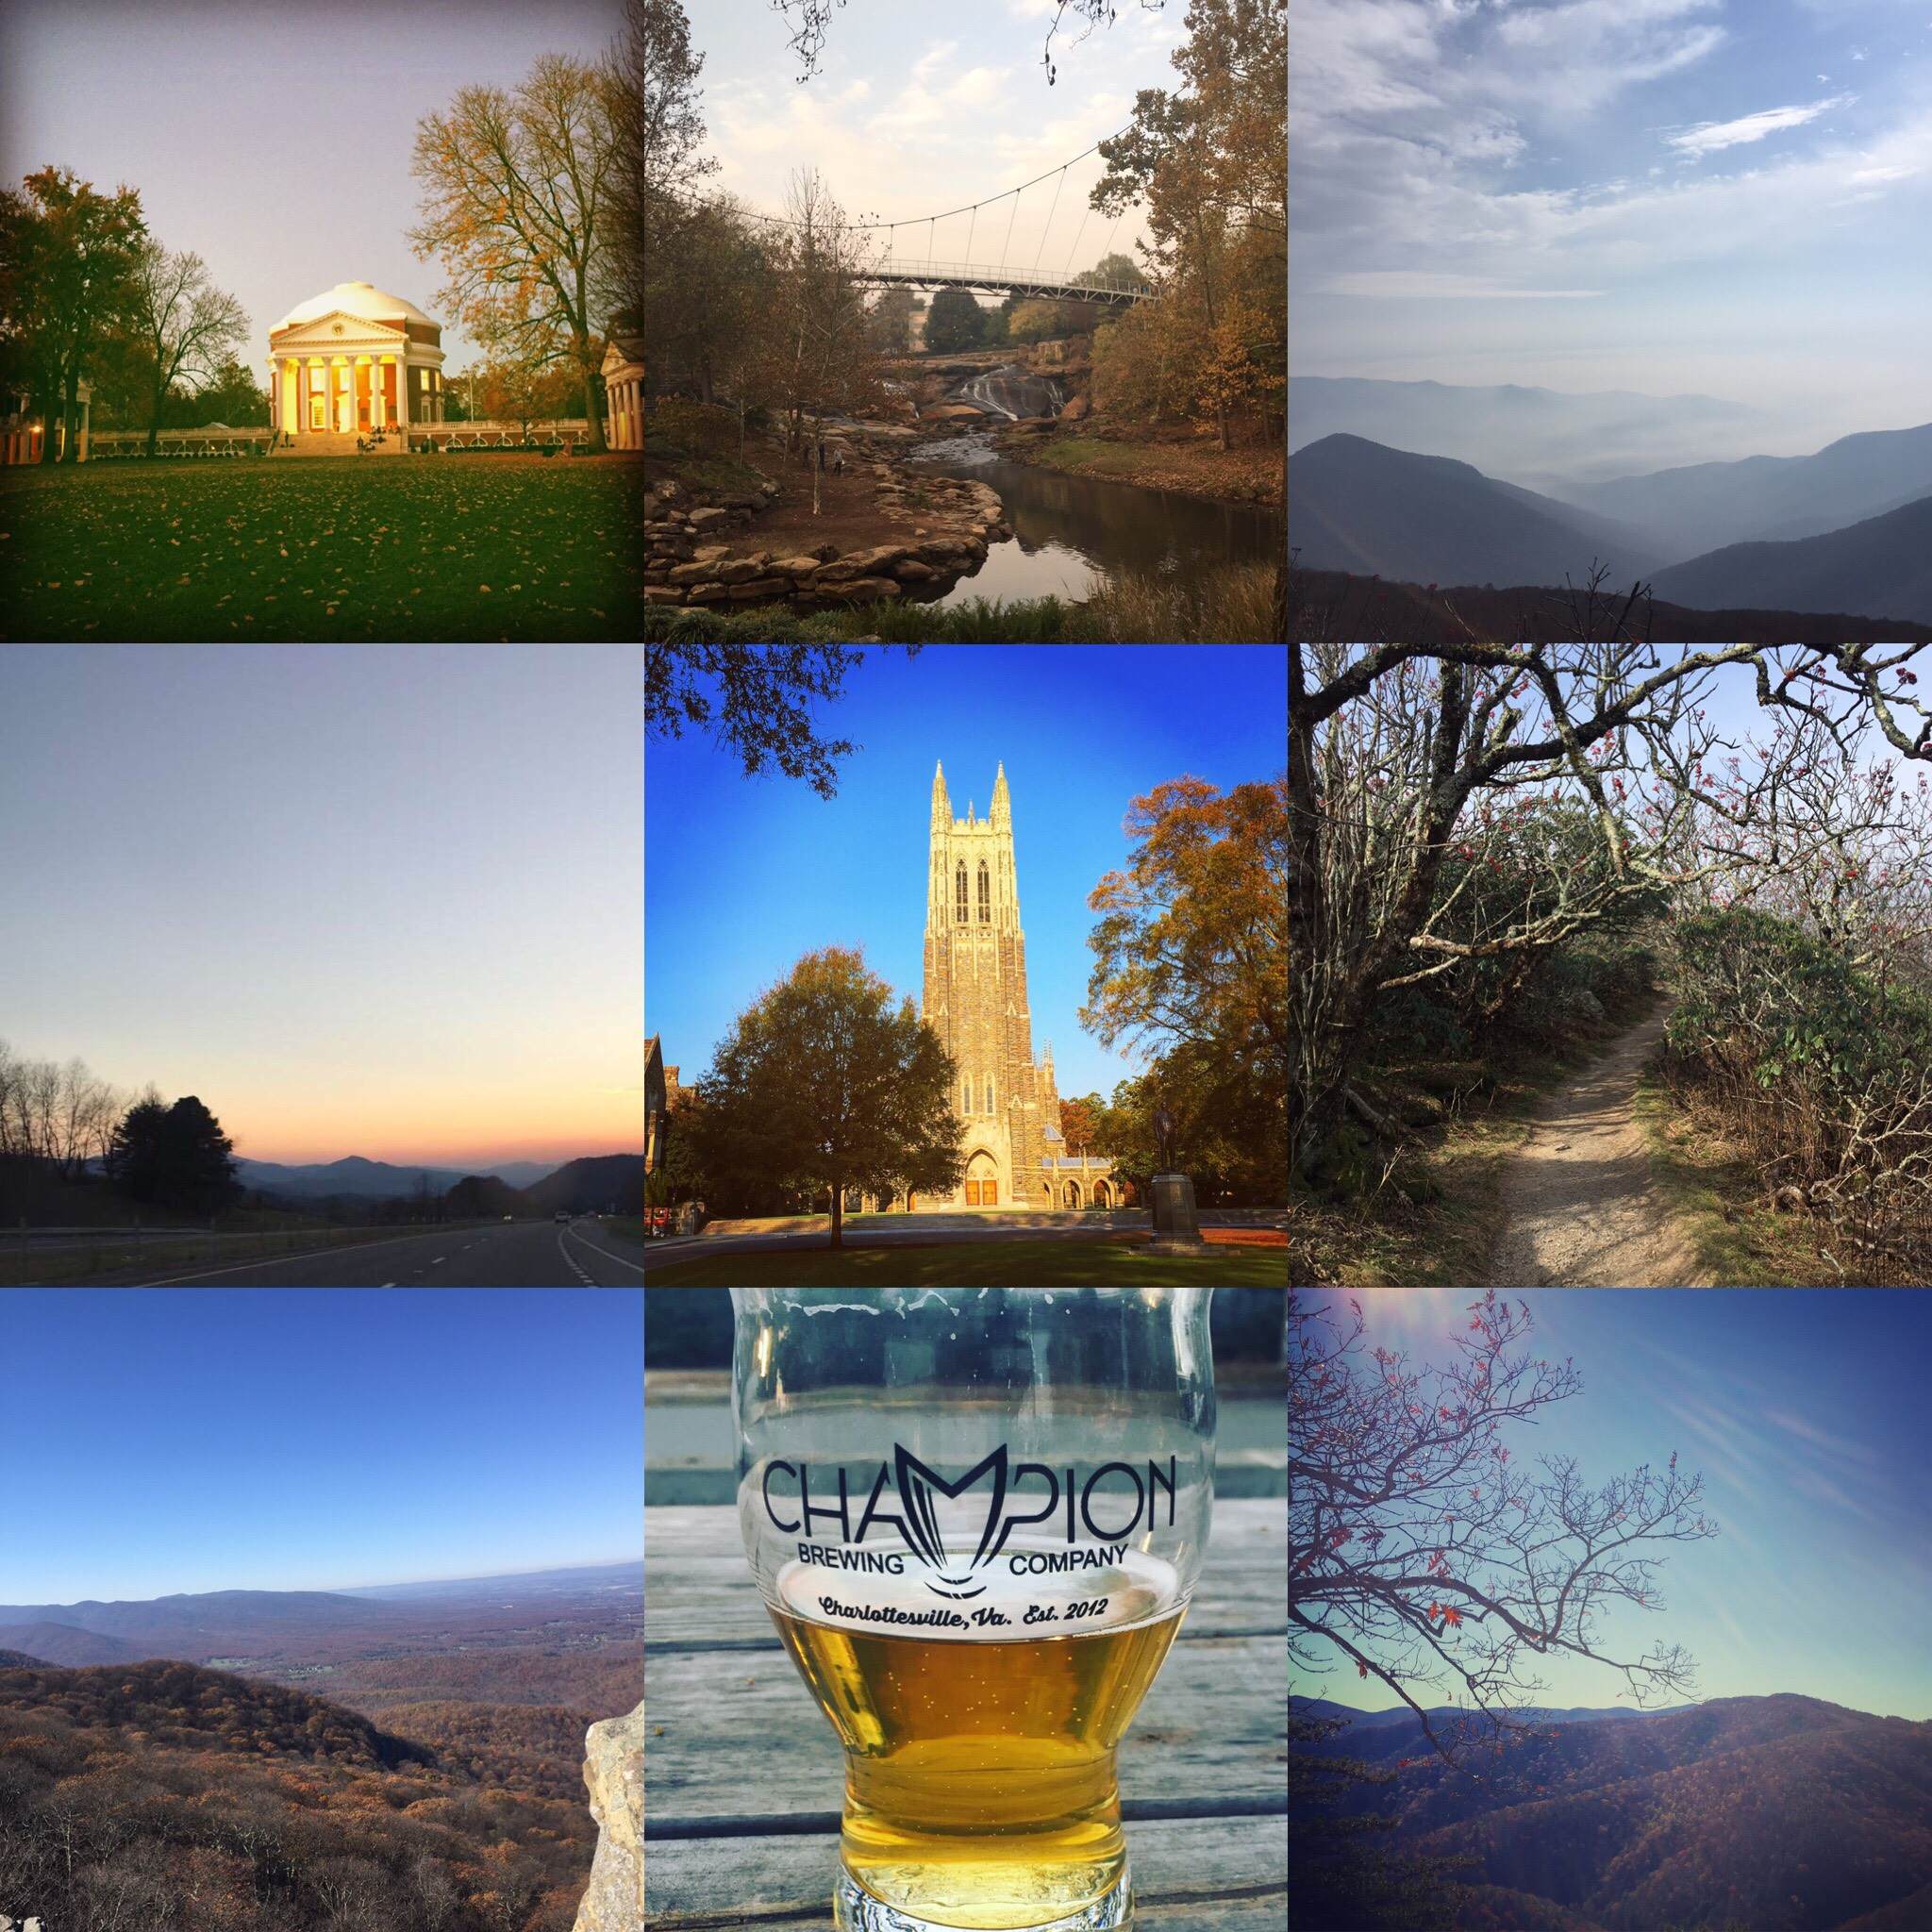 Scenes from the interview trail in VA, NC, and SC.